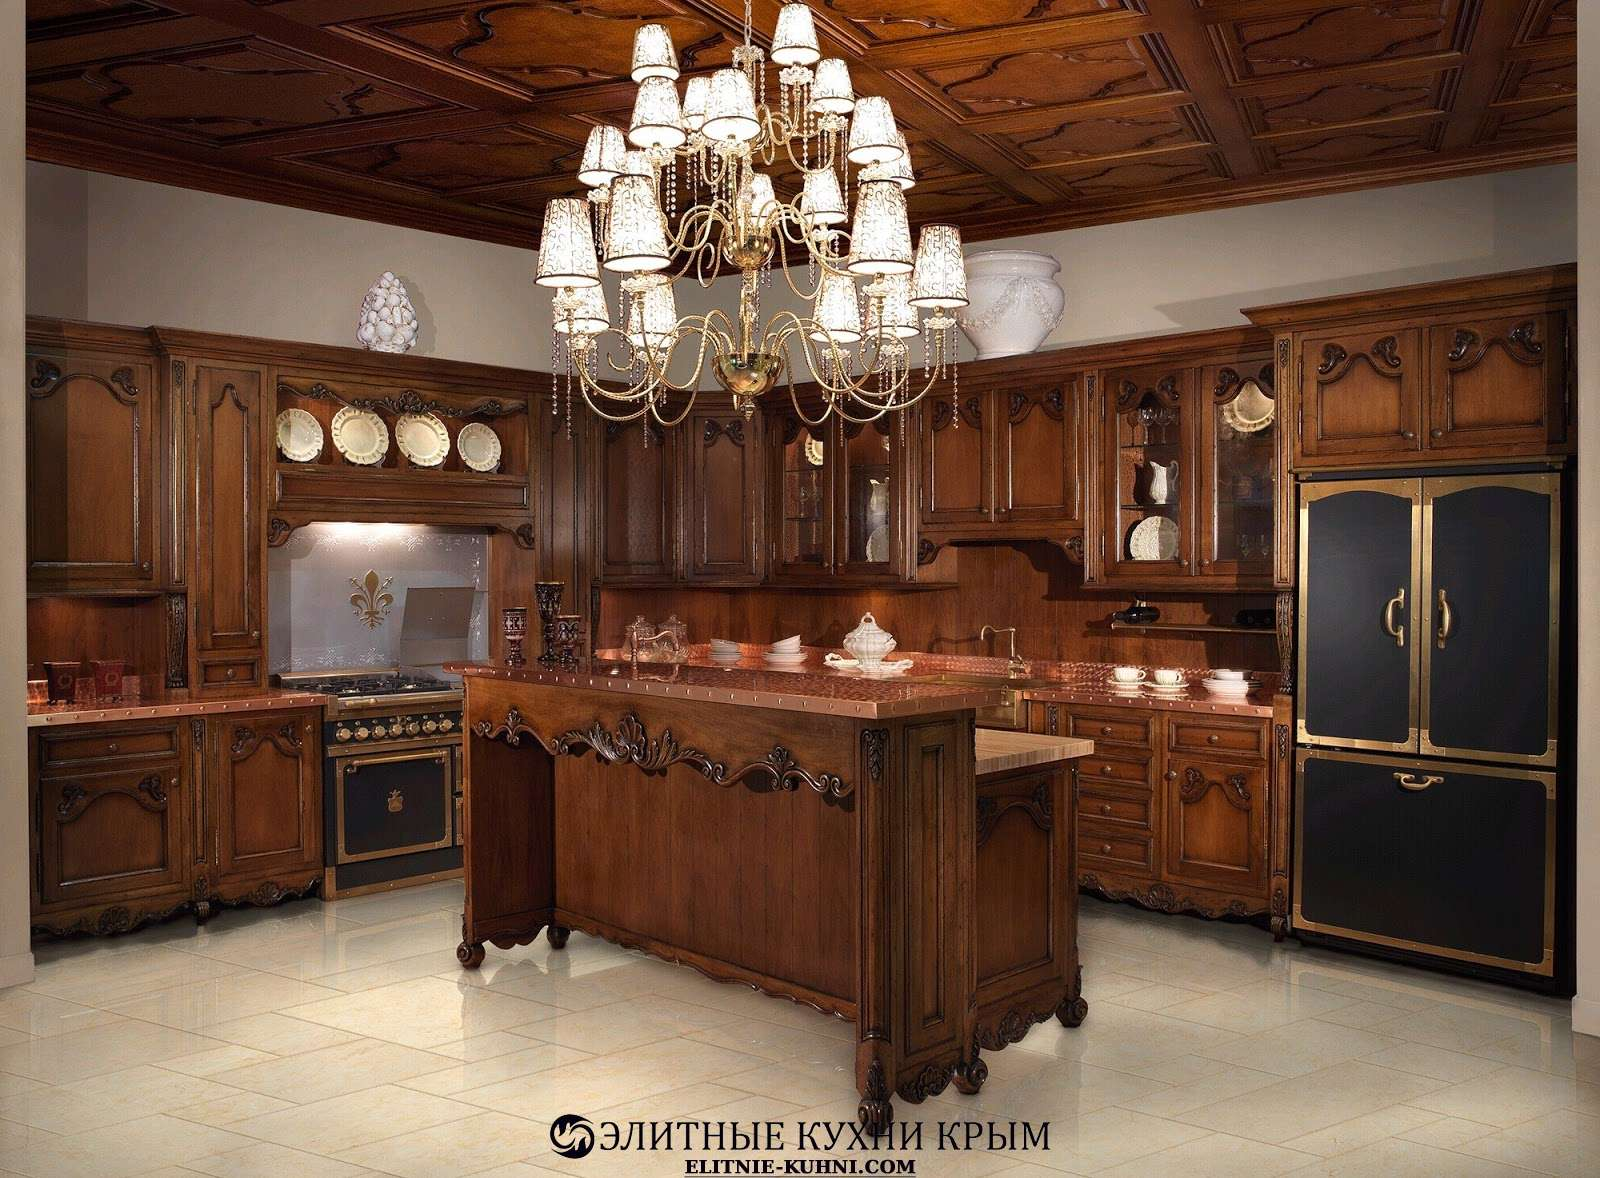 provence-elite-kitchen-Francesco-Molon-dd (1)